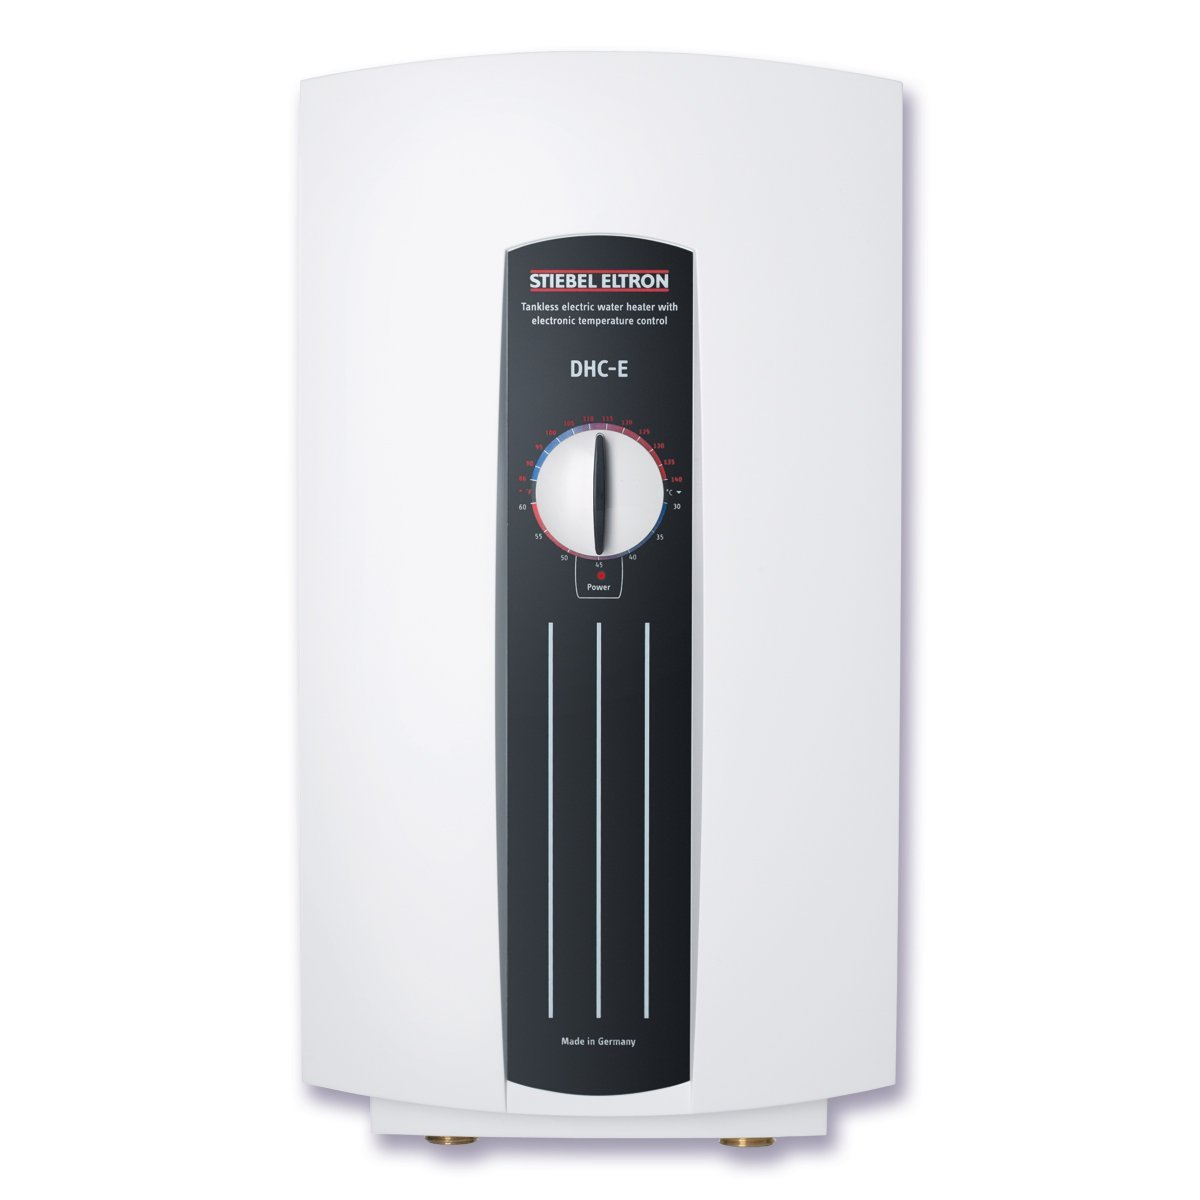 StiebelEltron DHC-E12 E Best Electric Tankless Water Heater